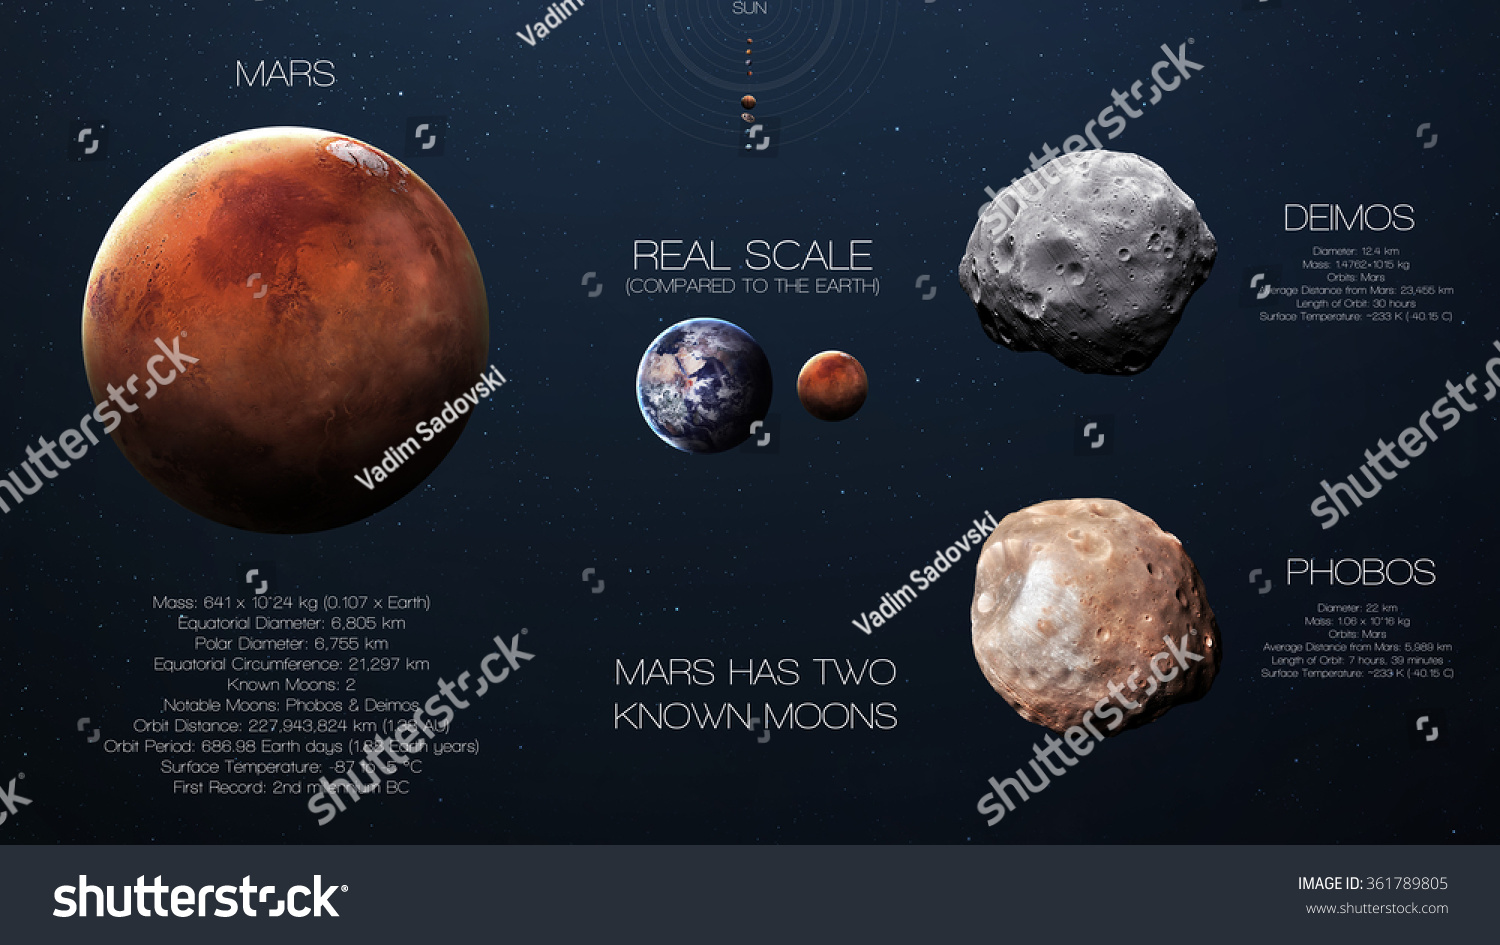 image shutterstock com/z/stock-photo-mars-high-res